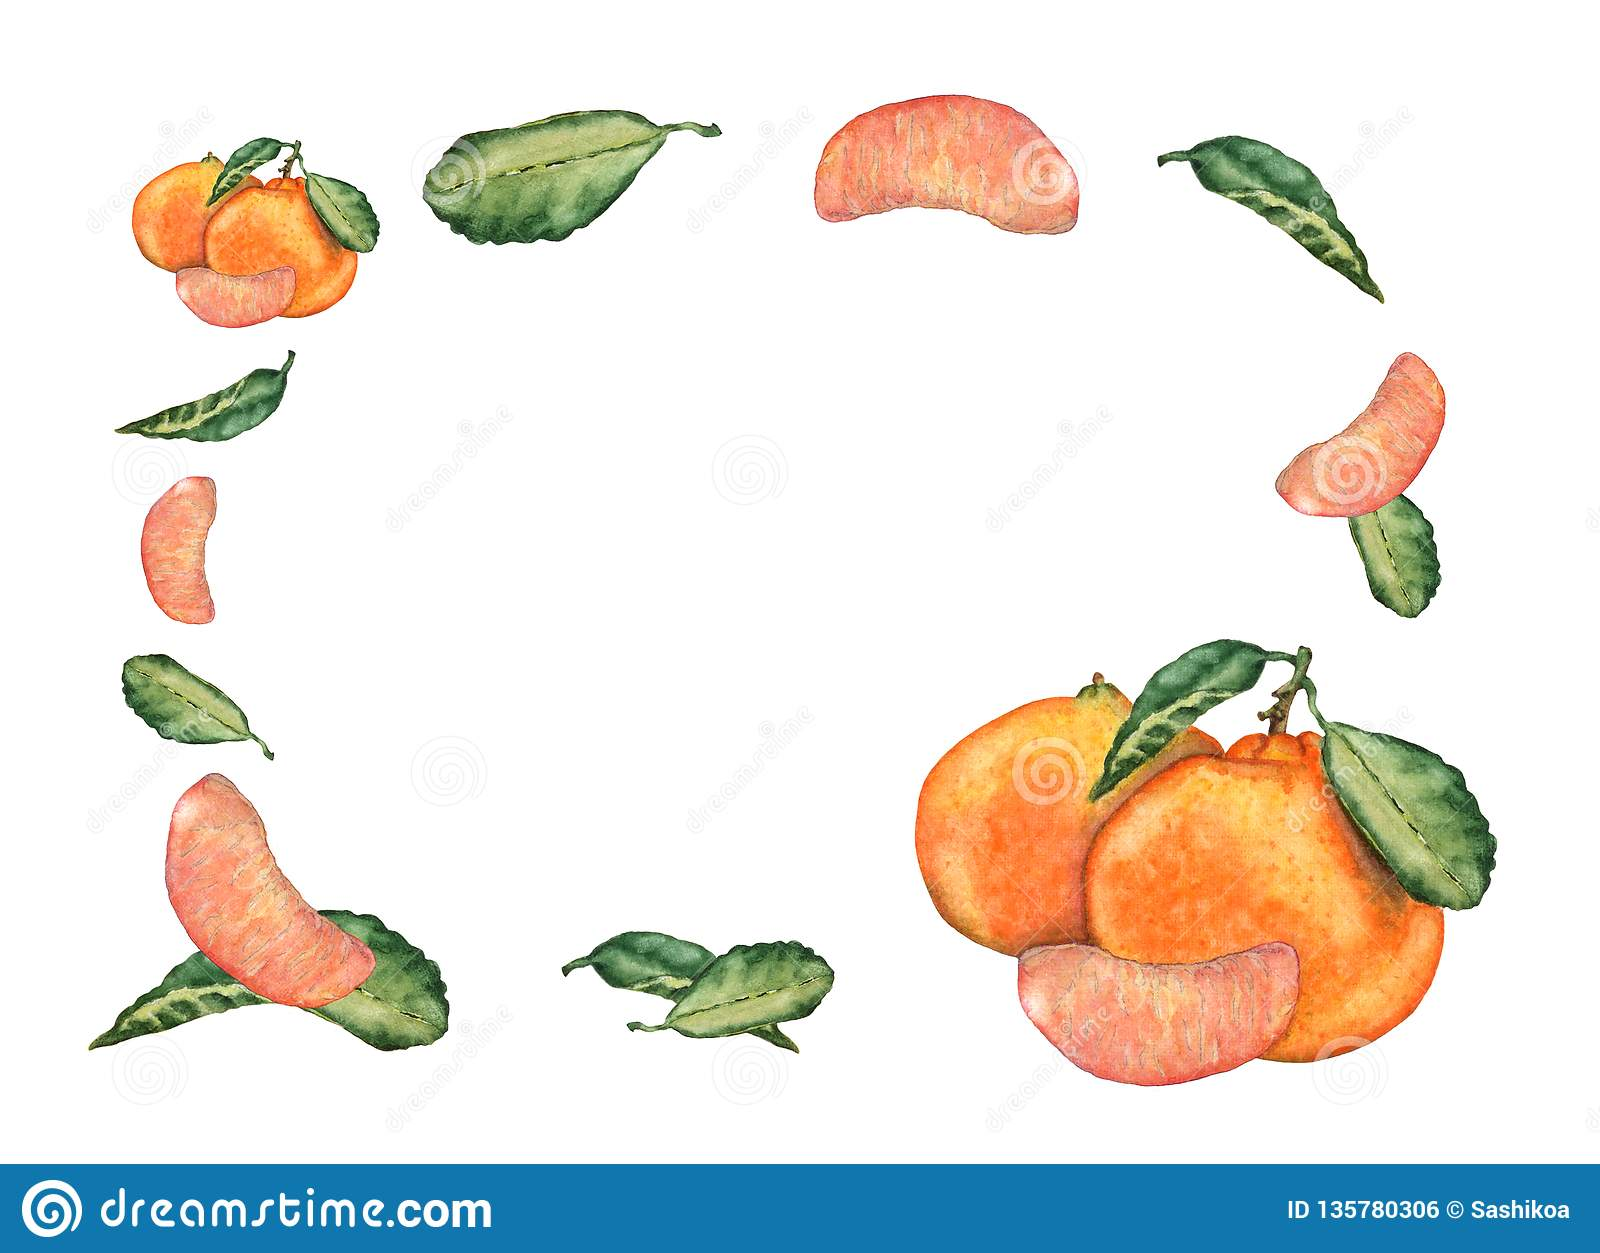 Watercolor greeting or invitation card of mandarin fruits on white background